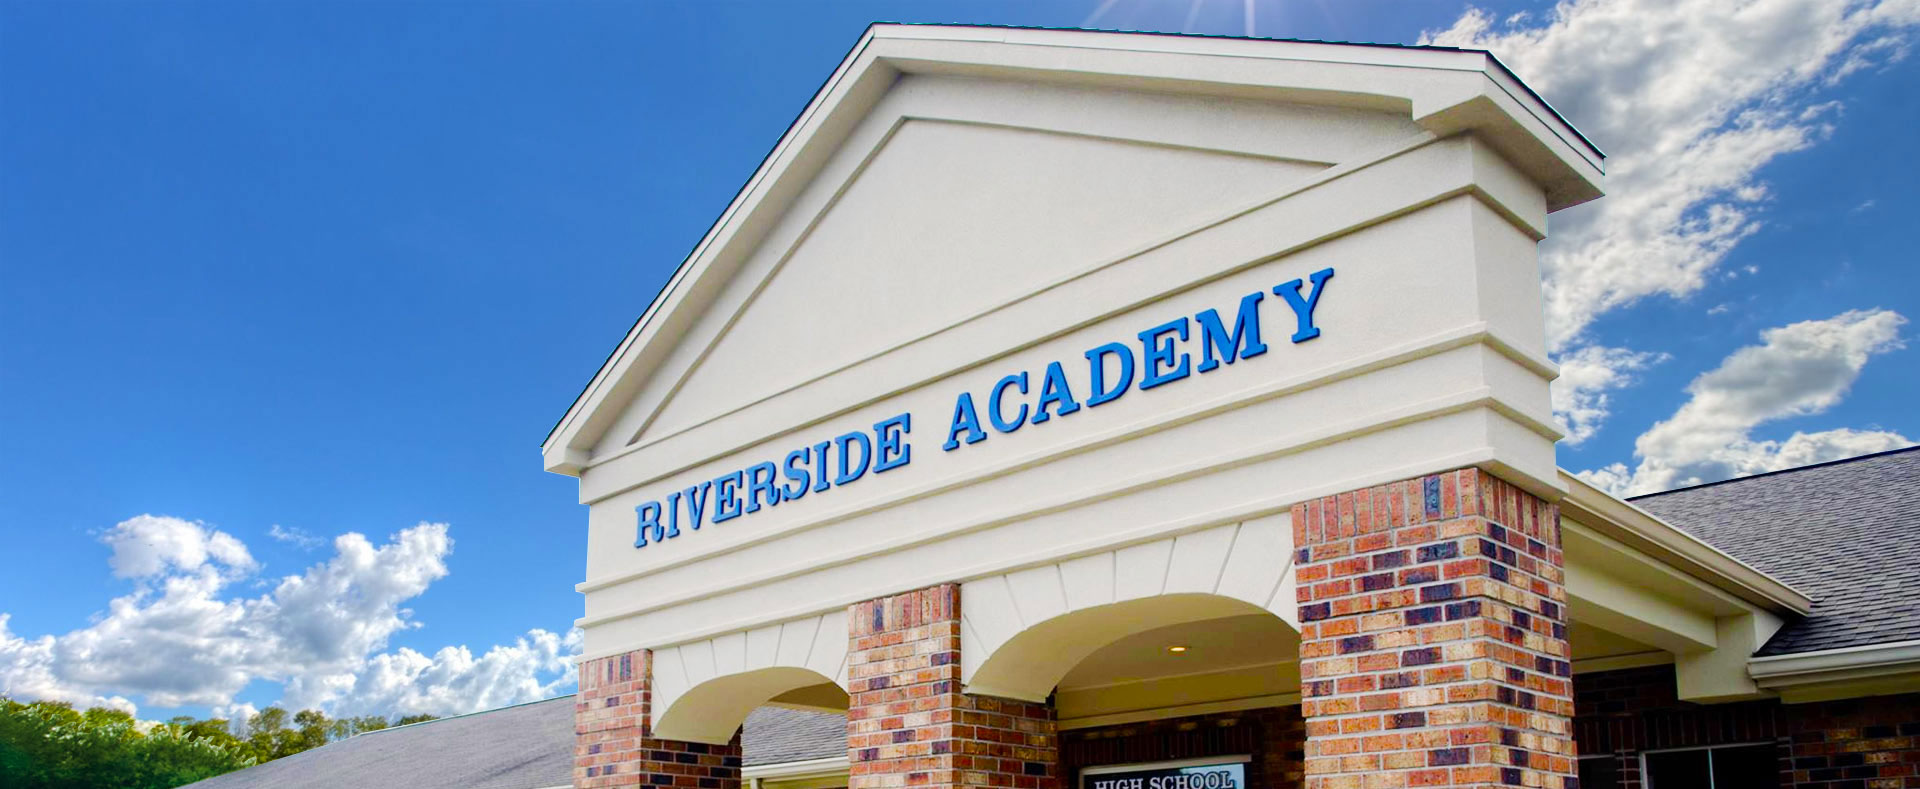 Riverside Academy Front of Building